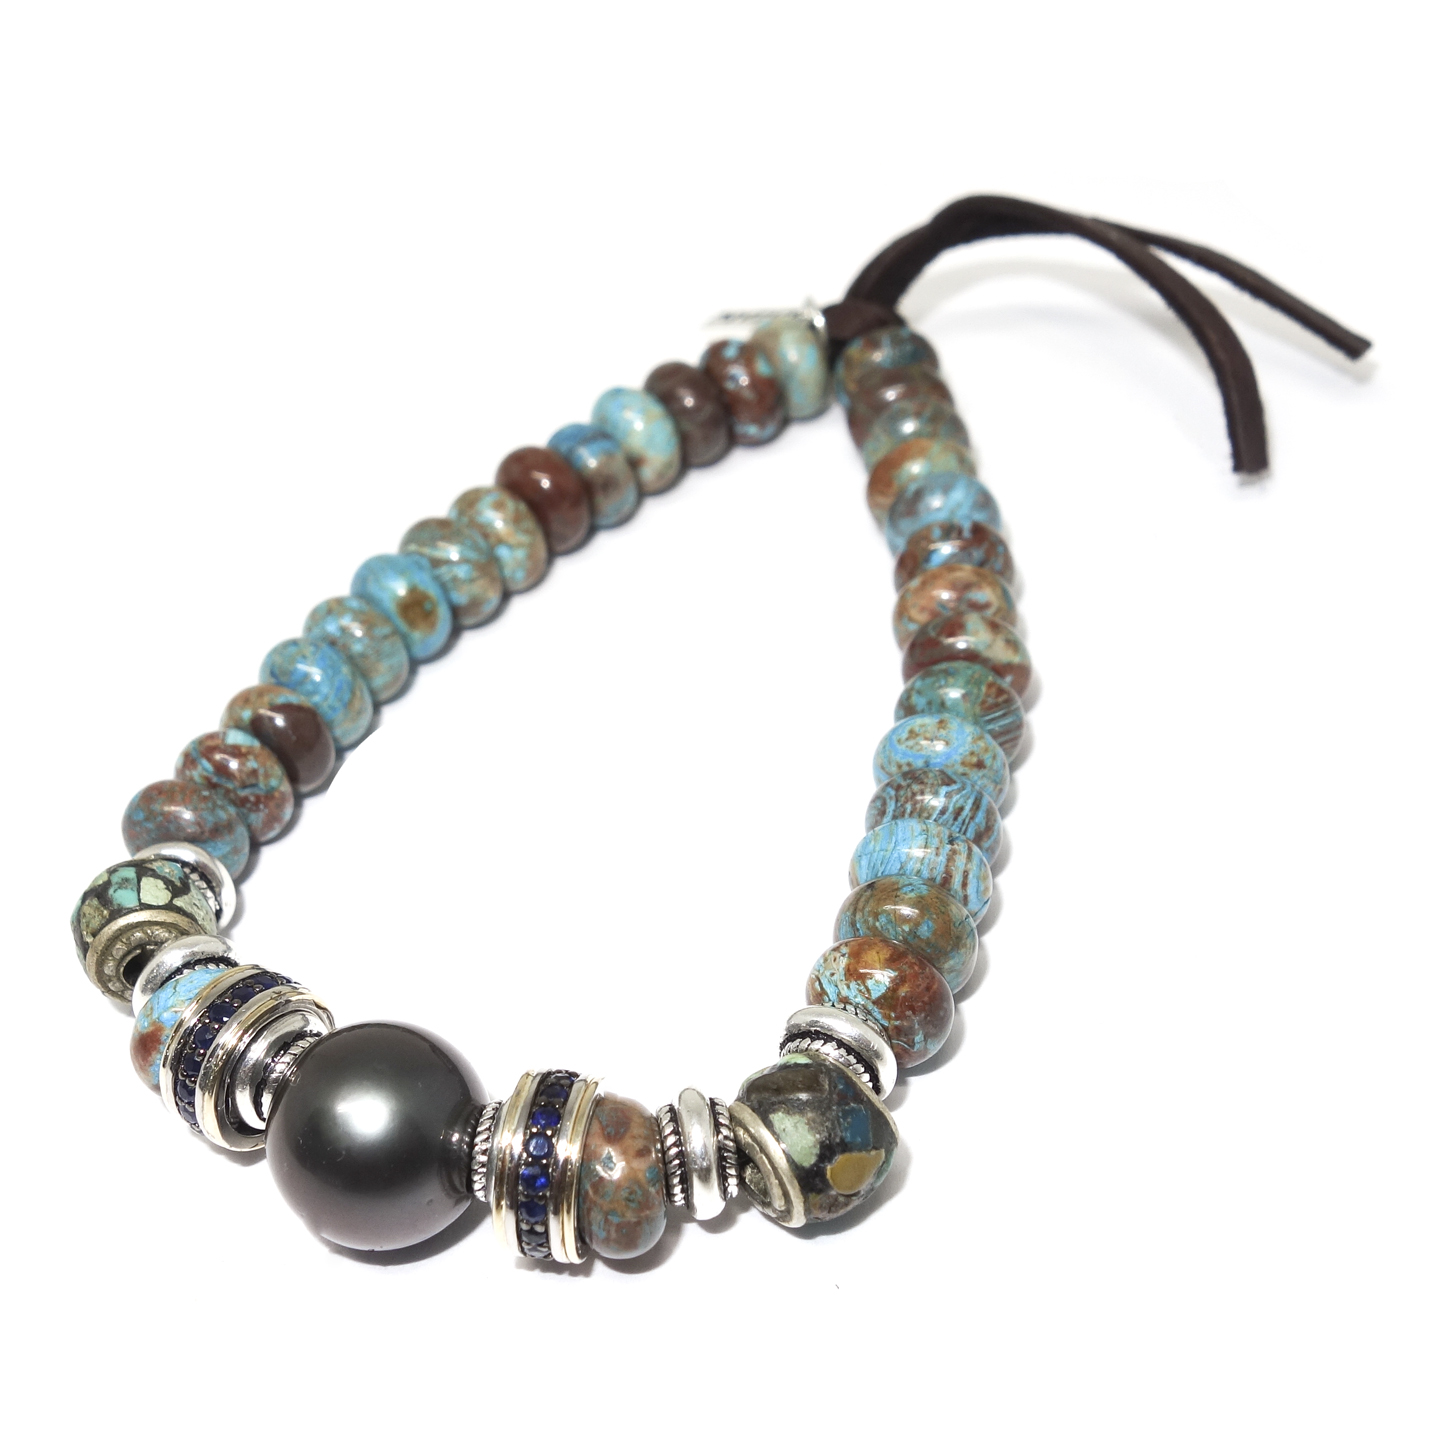 Turquoise & South Sea Pearl Bracelet